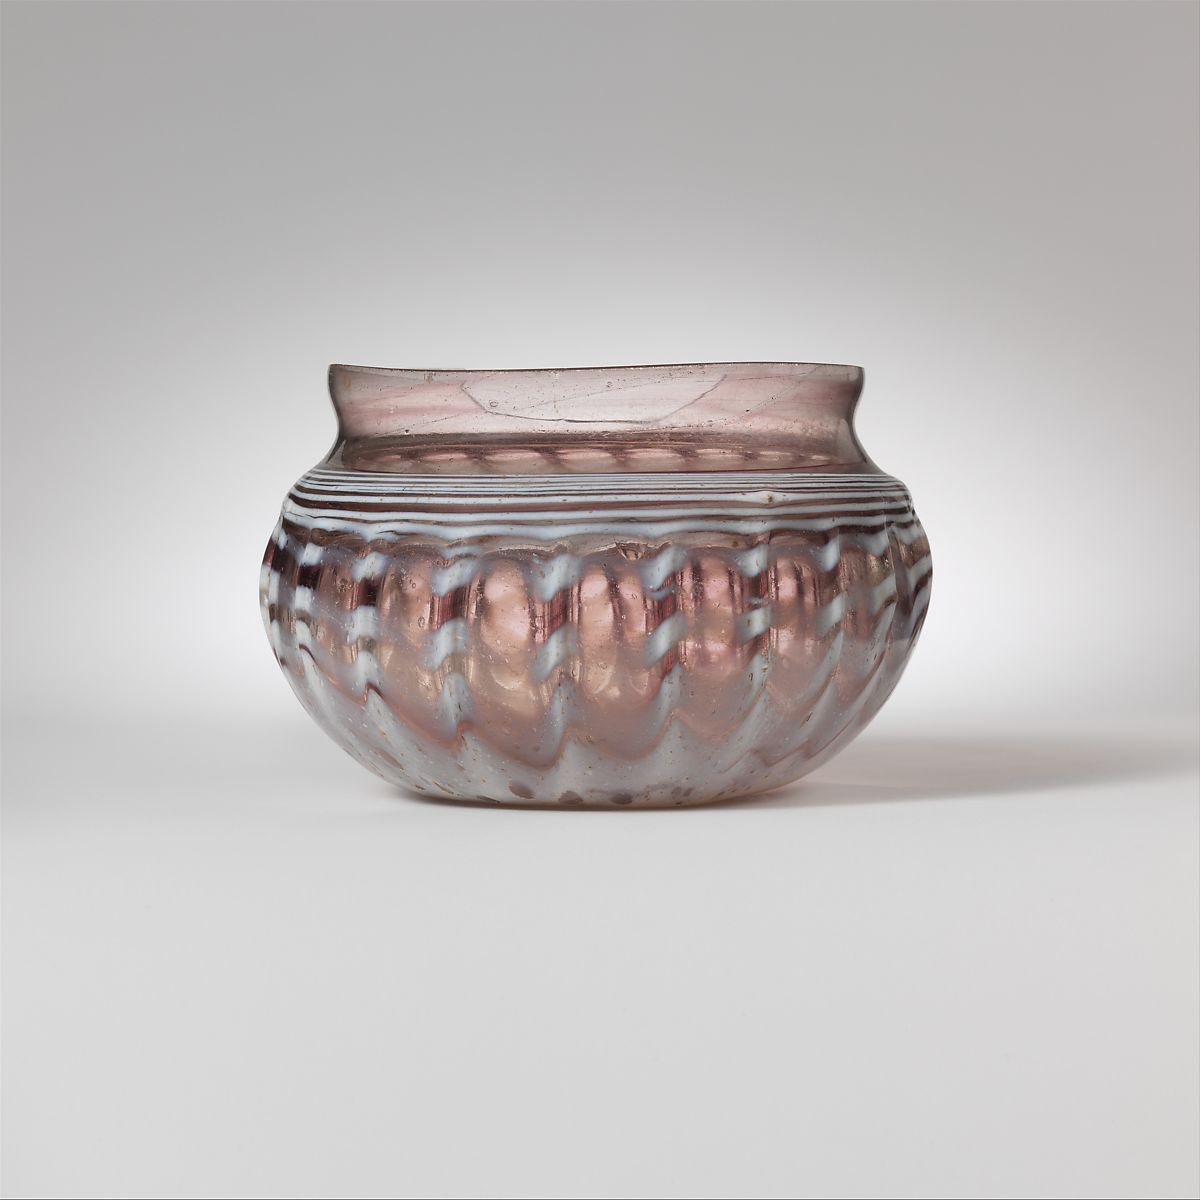 Glass ribbed bowl | Roman | Early Imperial | The Met